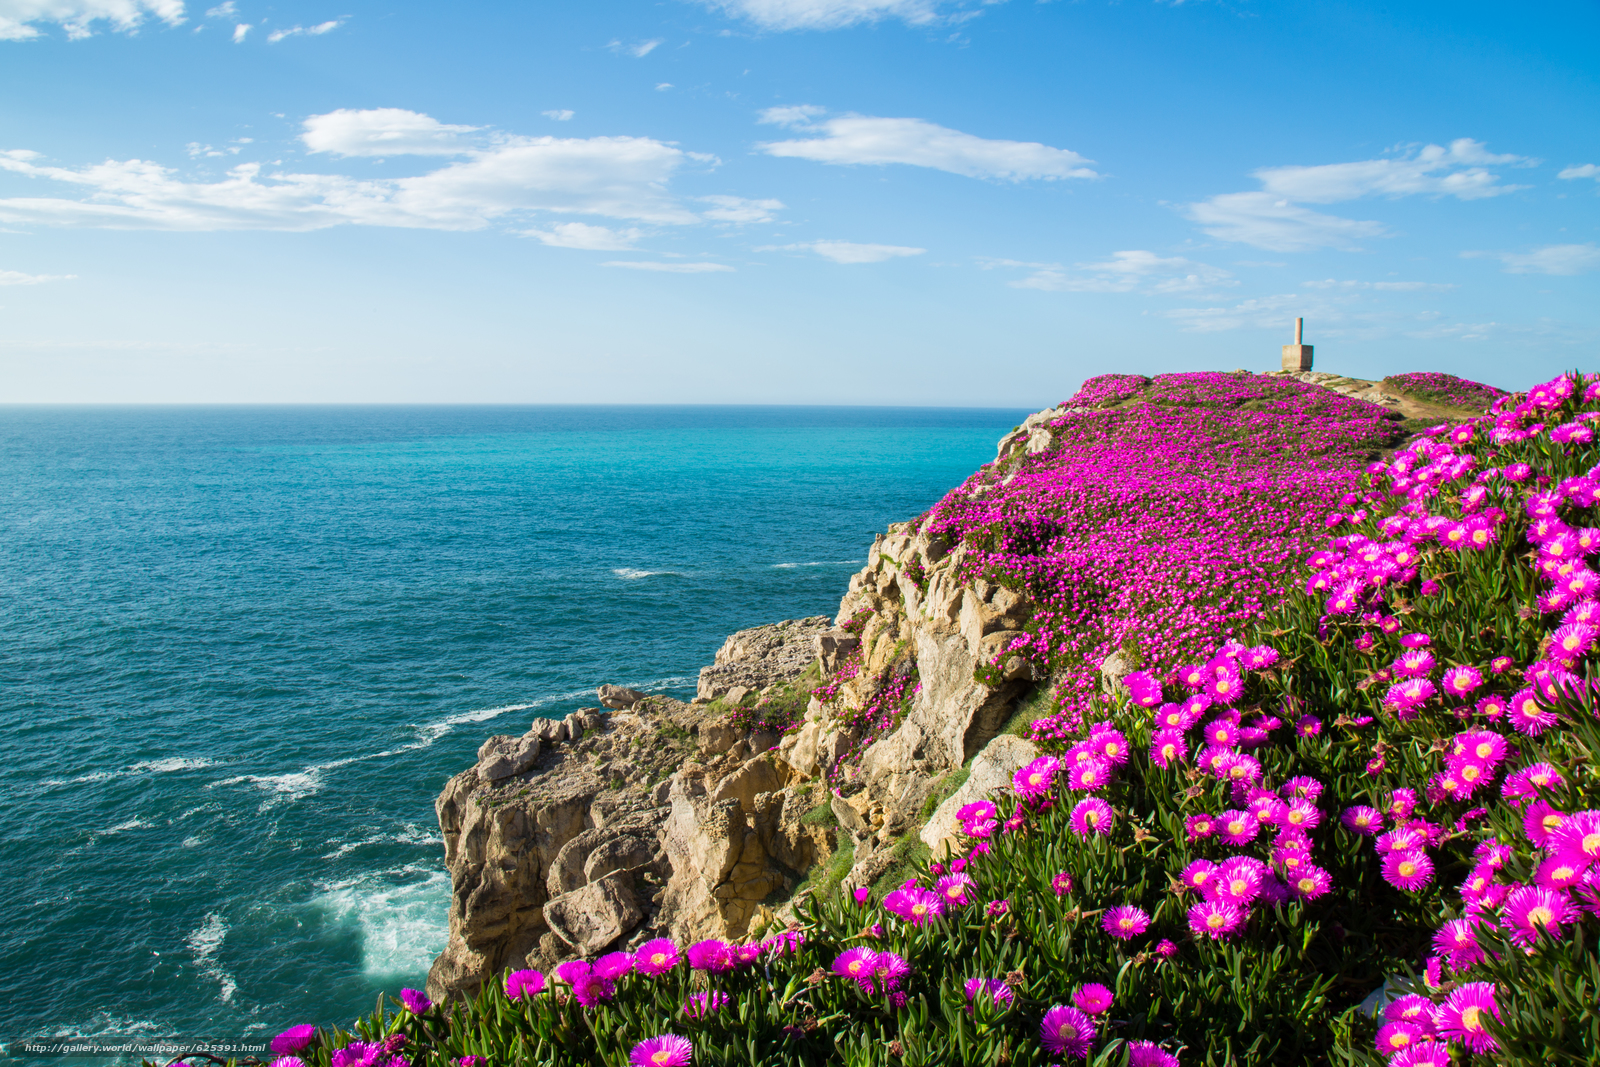 Suances, Cantabria, Spain, Bay of Biscay, Suances, Cantabria, Spain, Bay of Biscay, bay, ocean, Rocks, Flowers, coast